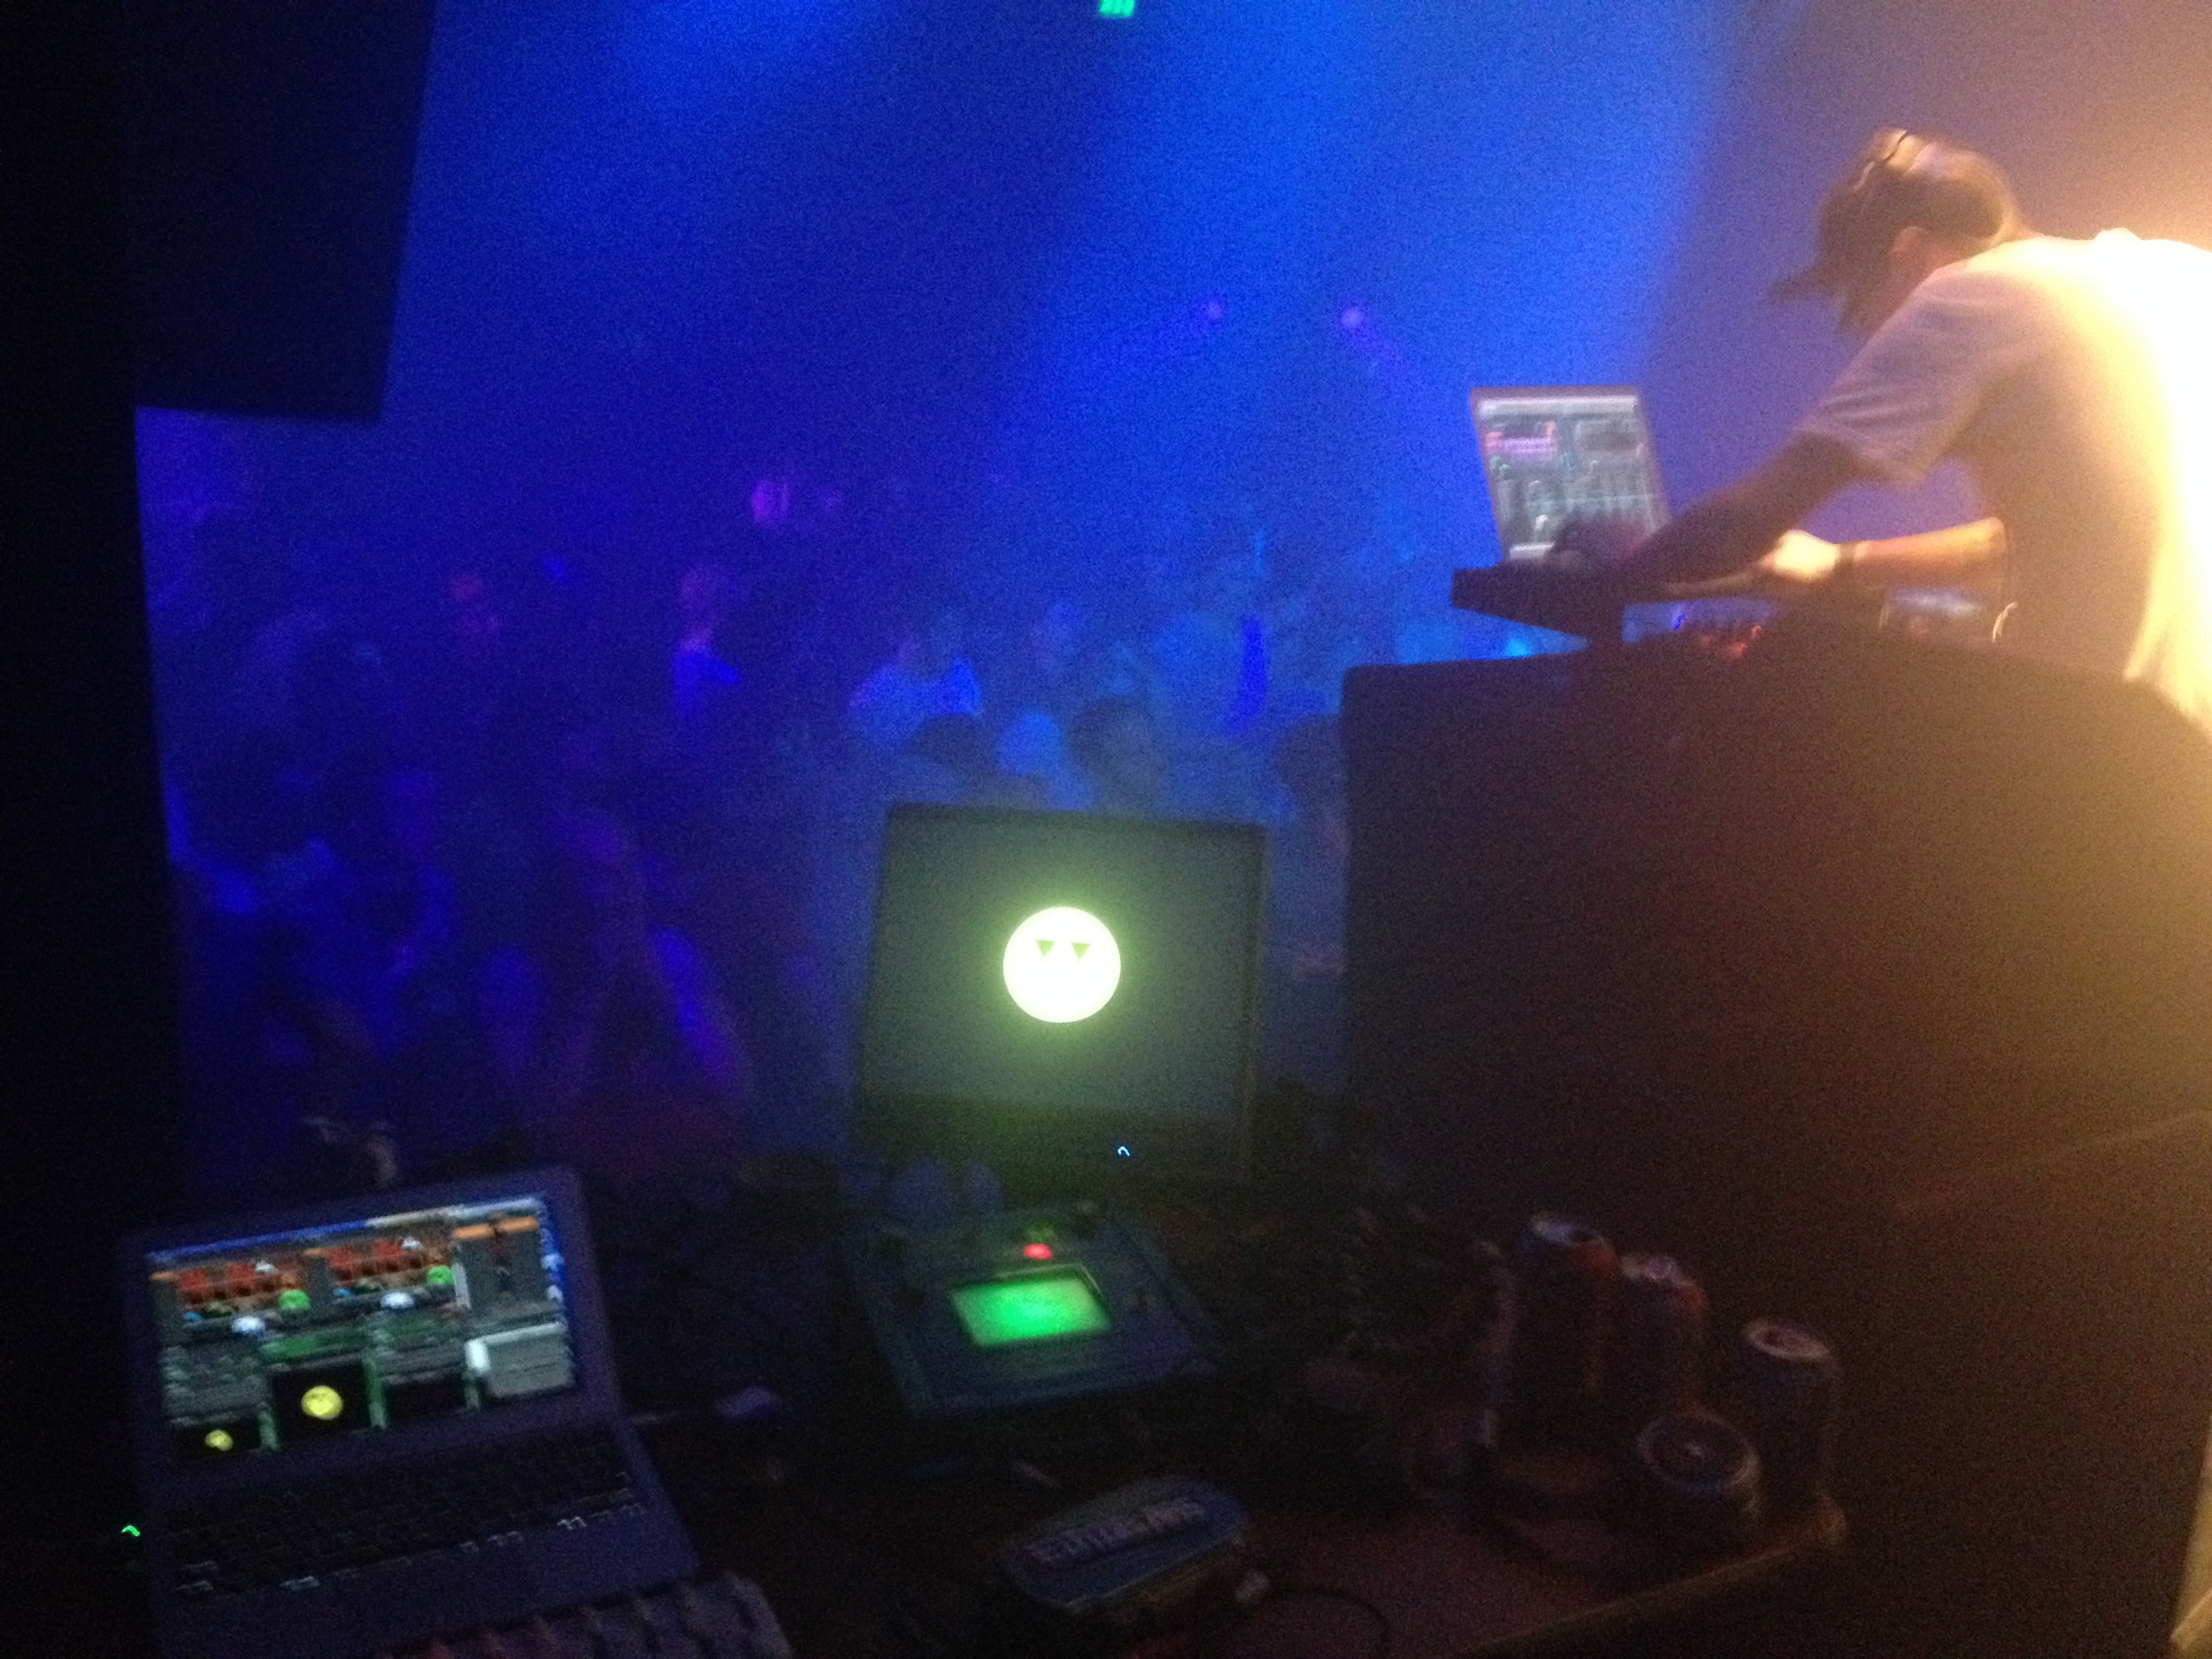 My VJ setup, in front of loads of people!